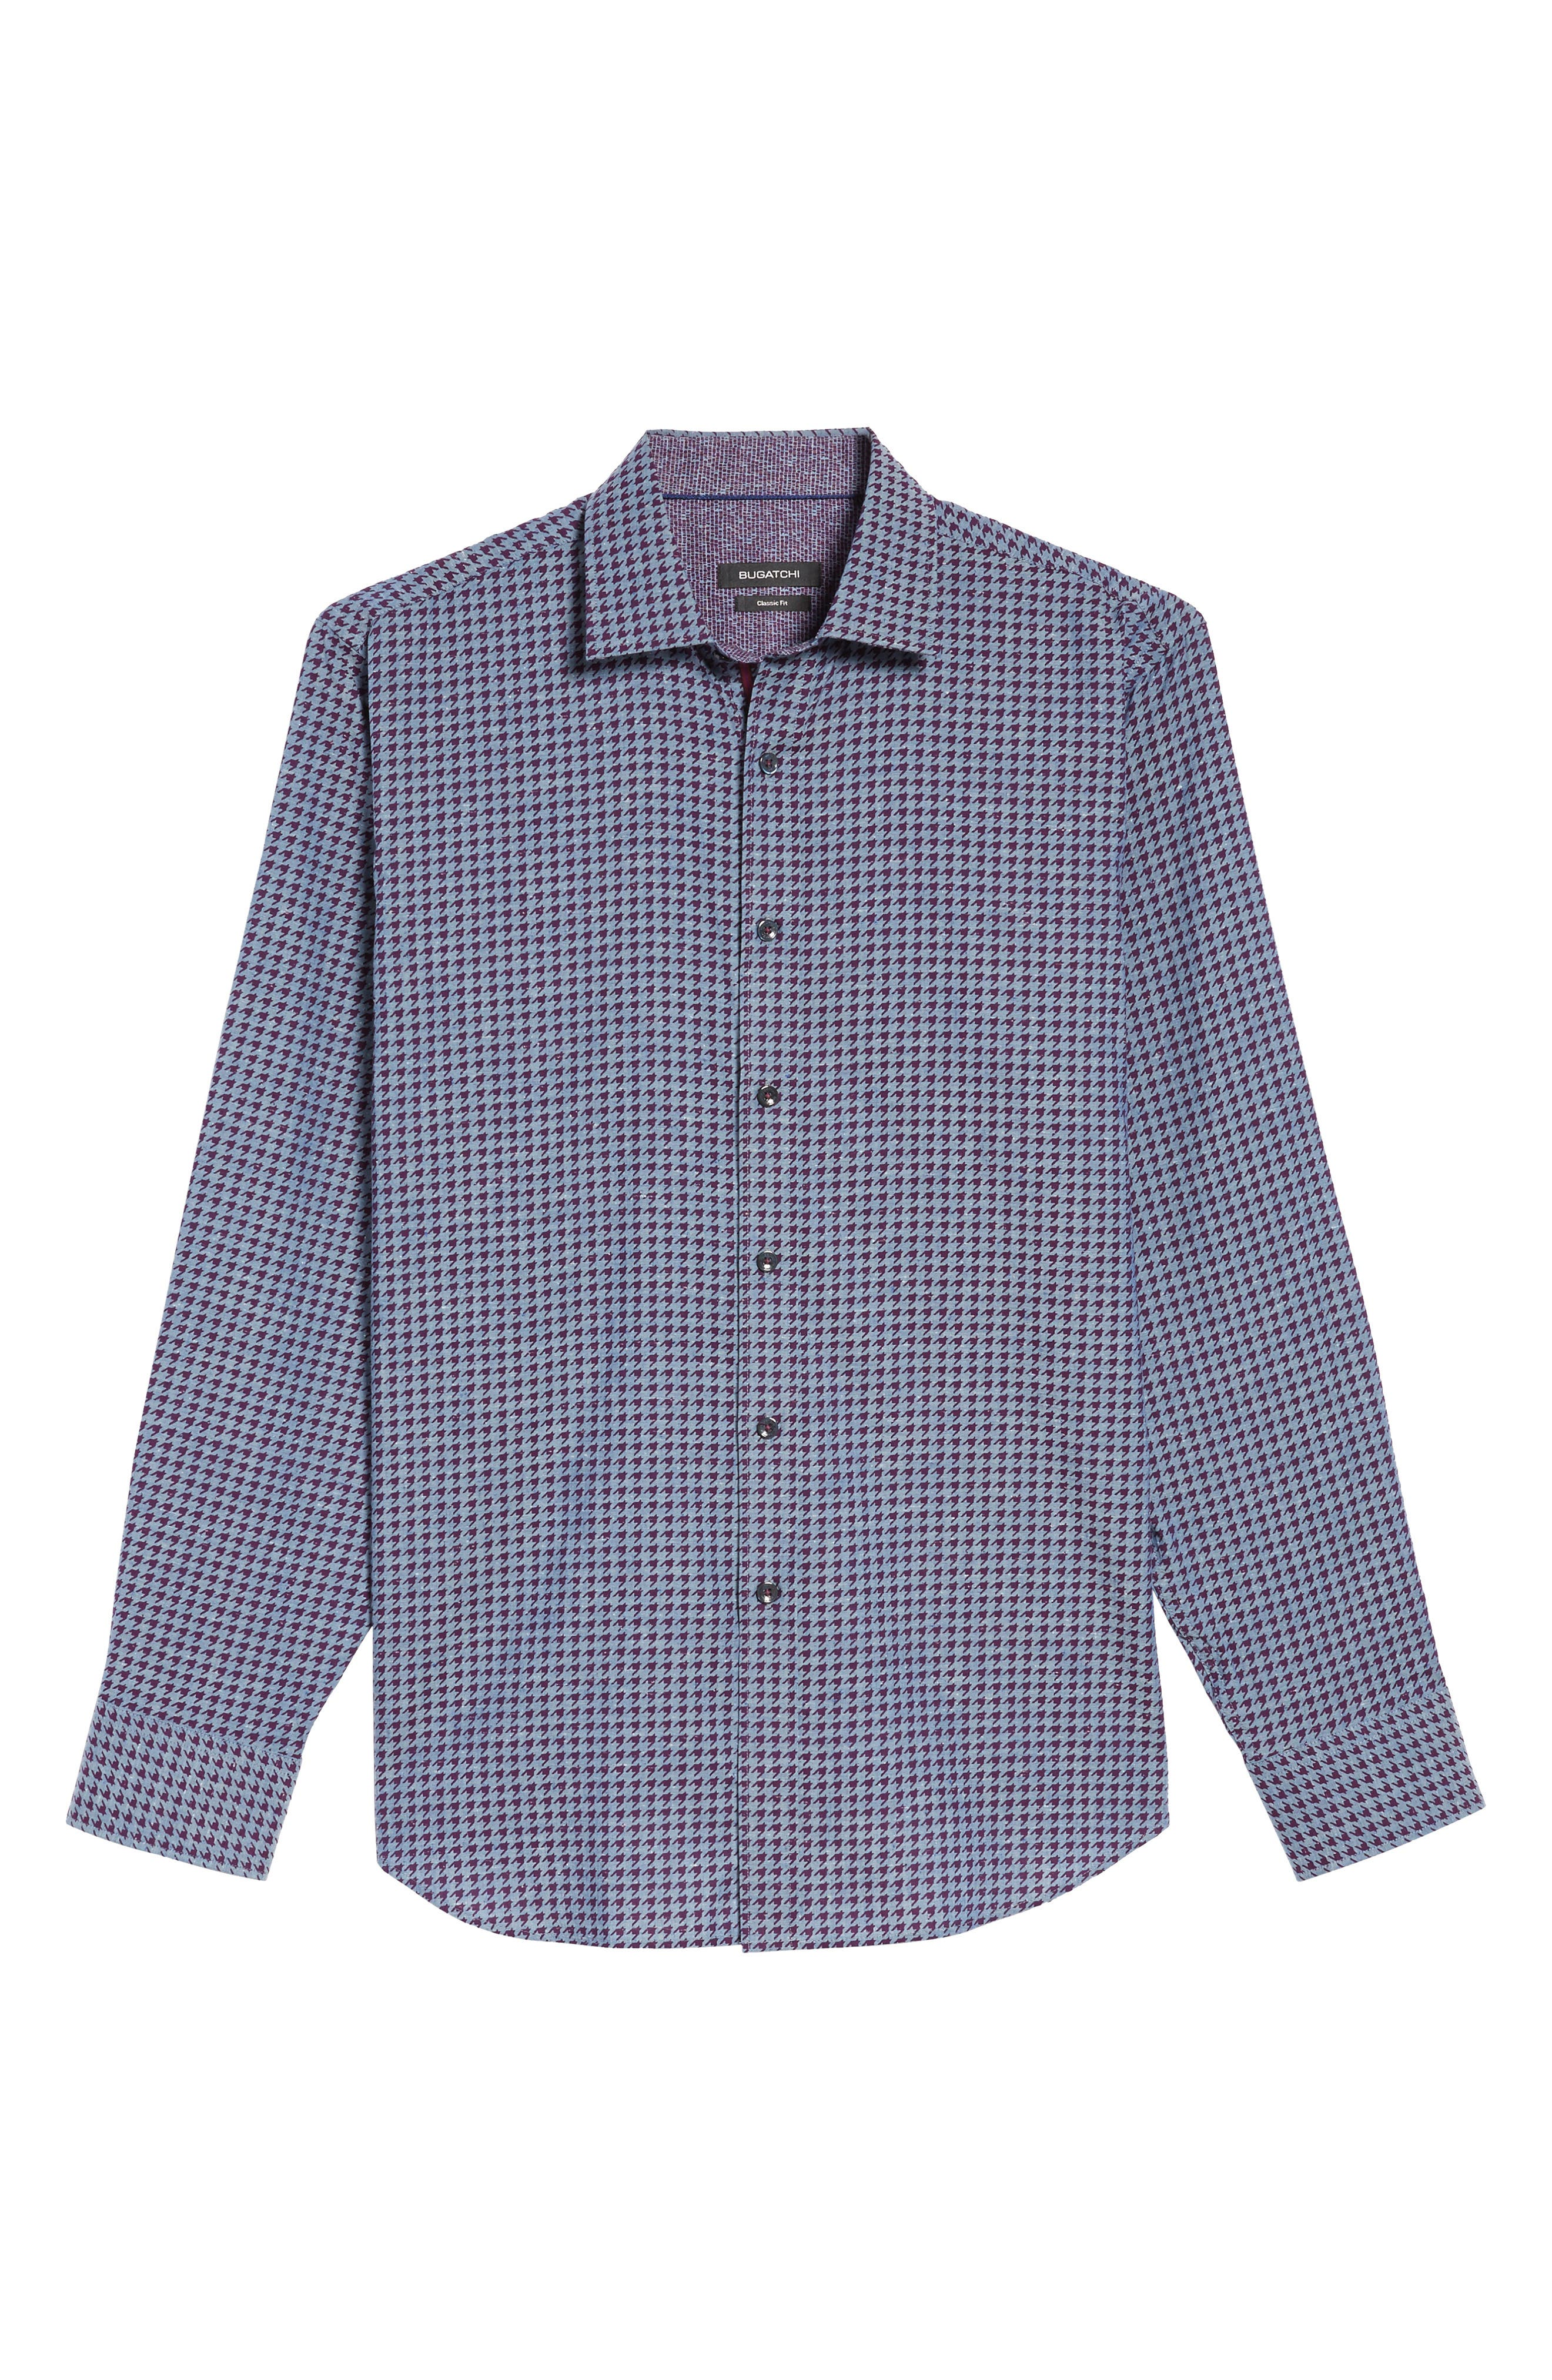 Classic Fit Houndstooth Print Sport Shirt,                             Alternate thumbnail 6, color,                             610